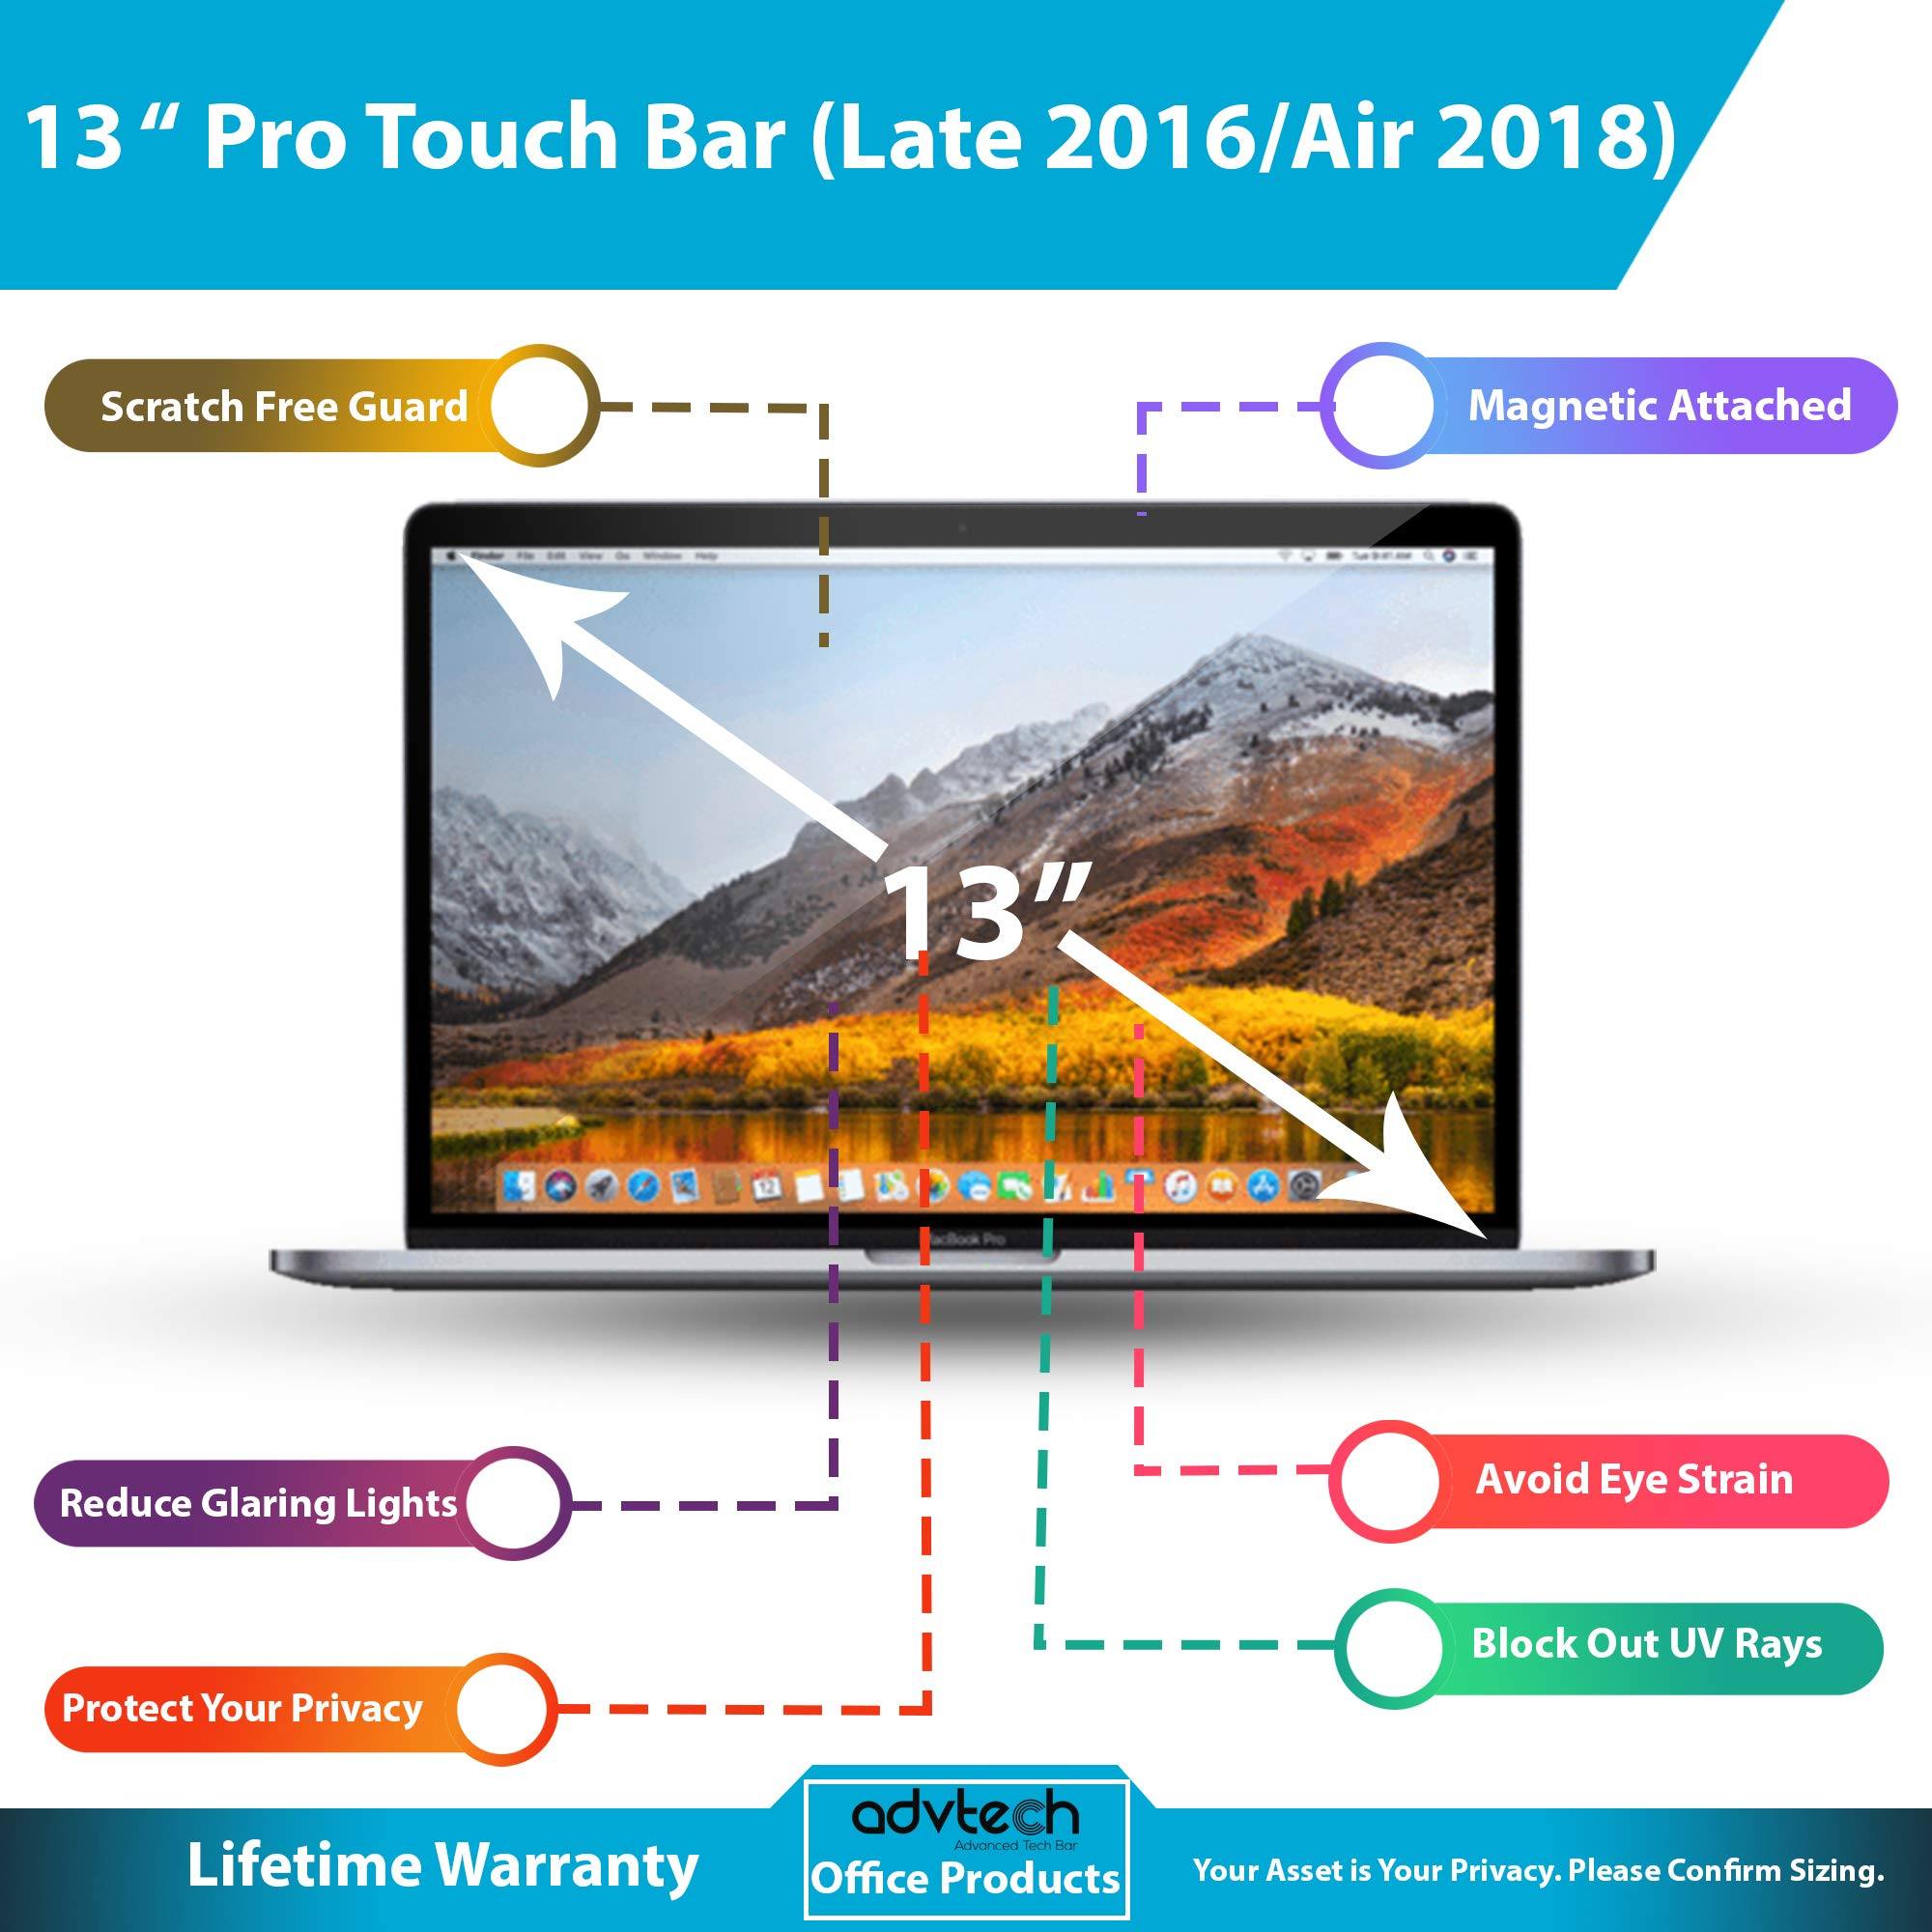 ADVTECH 2nd Gen Magnetic Privacy Screen Filter Compatible for Latest MacBook Pro 13'' Touch Bar (Late 2016) and MacAir (2018) No Stickers Required [Anti-UV Rays] Anti-Glare [Screen Protection] No Leak by ADVTECH (Image #2)